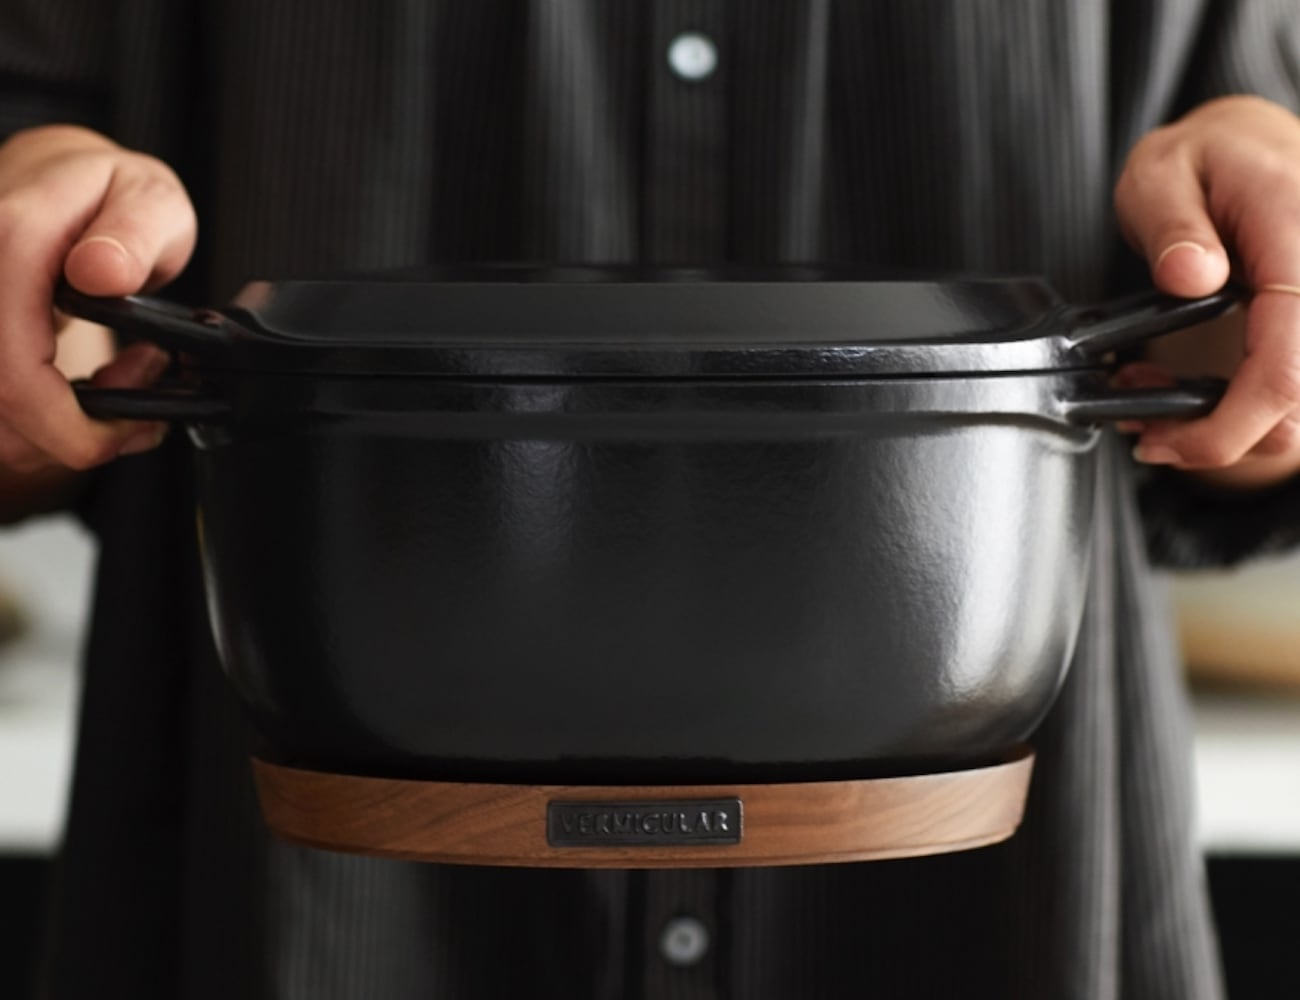 Vermicular Waterless Enameled Cast Iron Pots will improve any meal